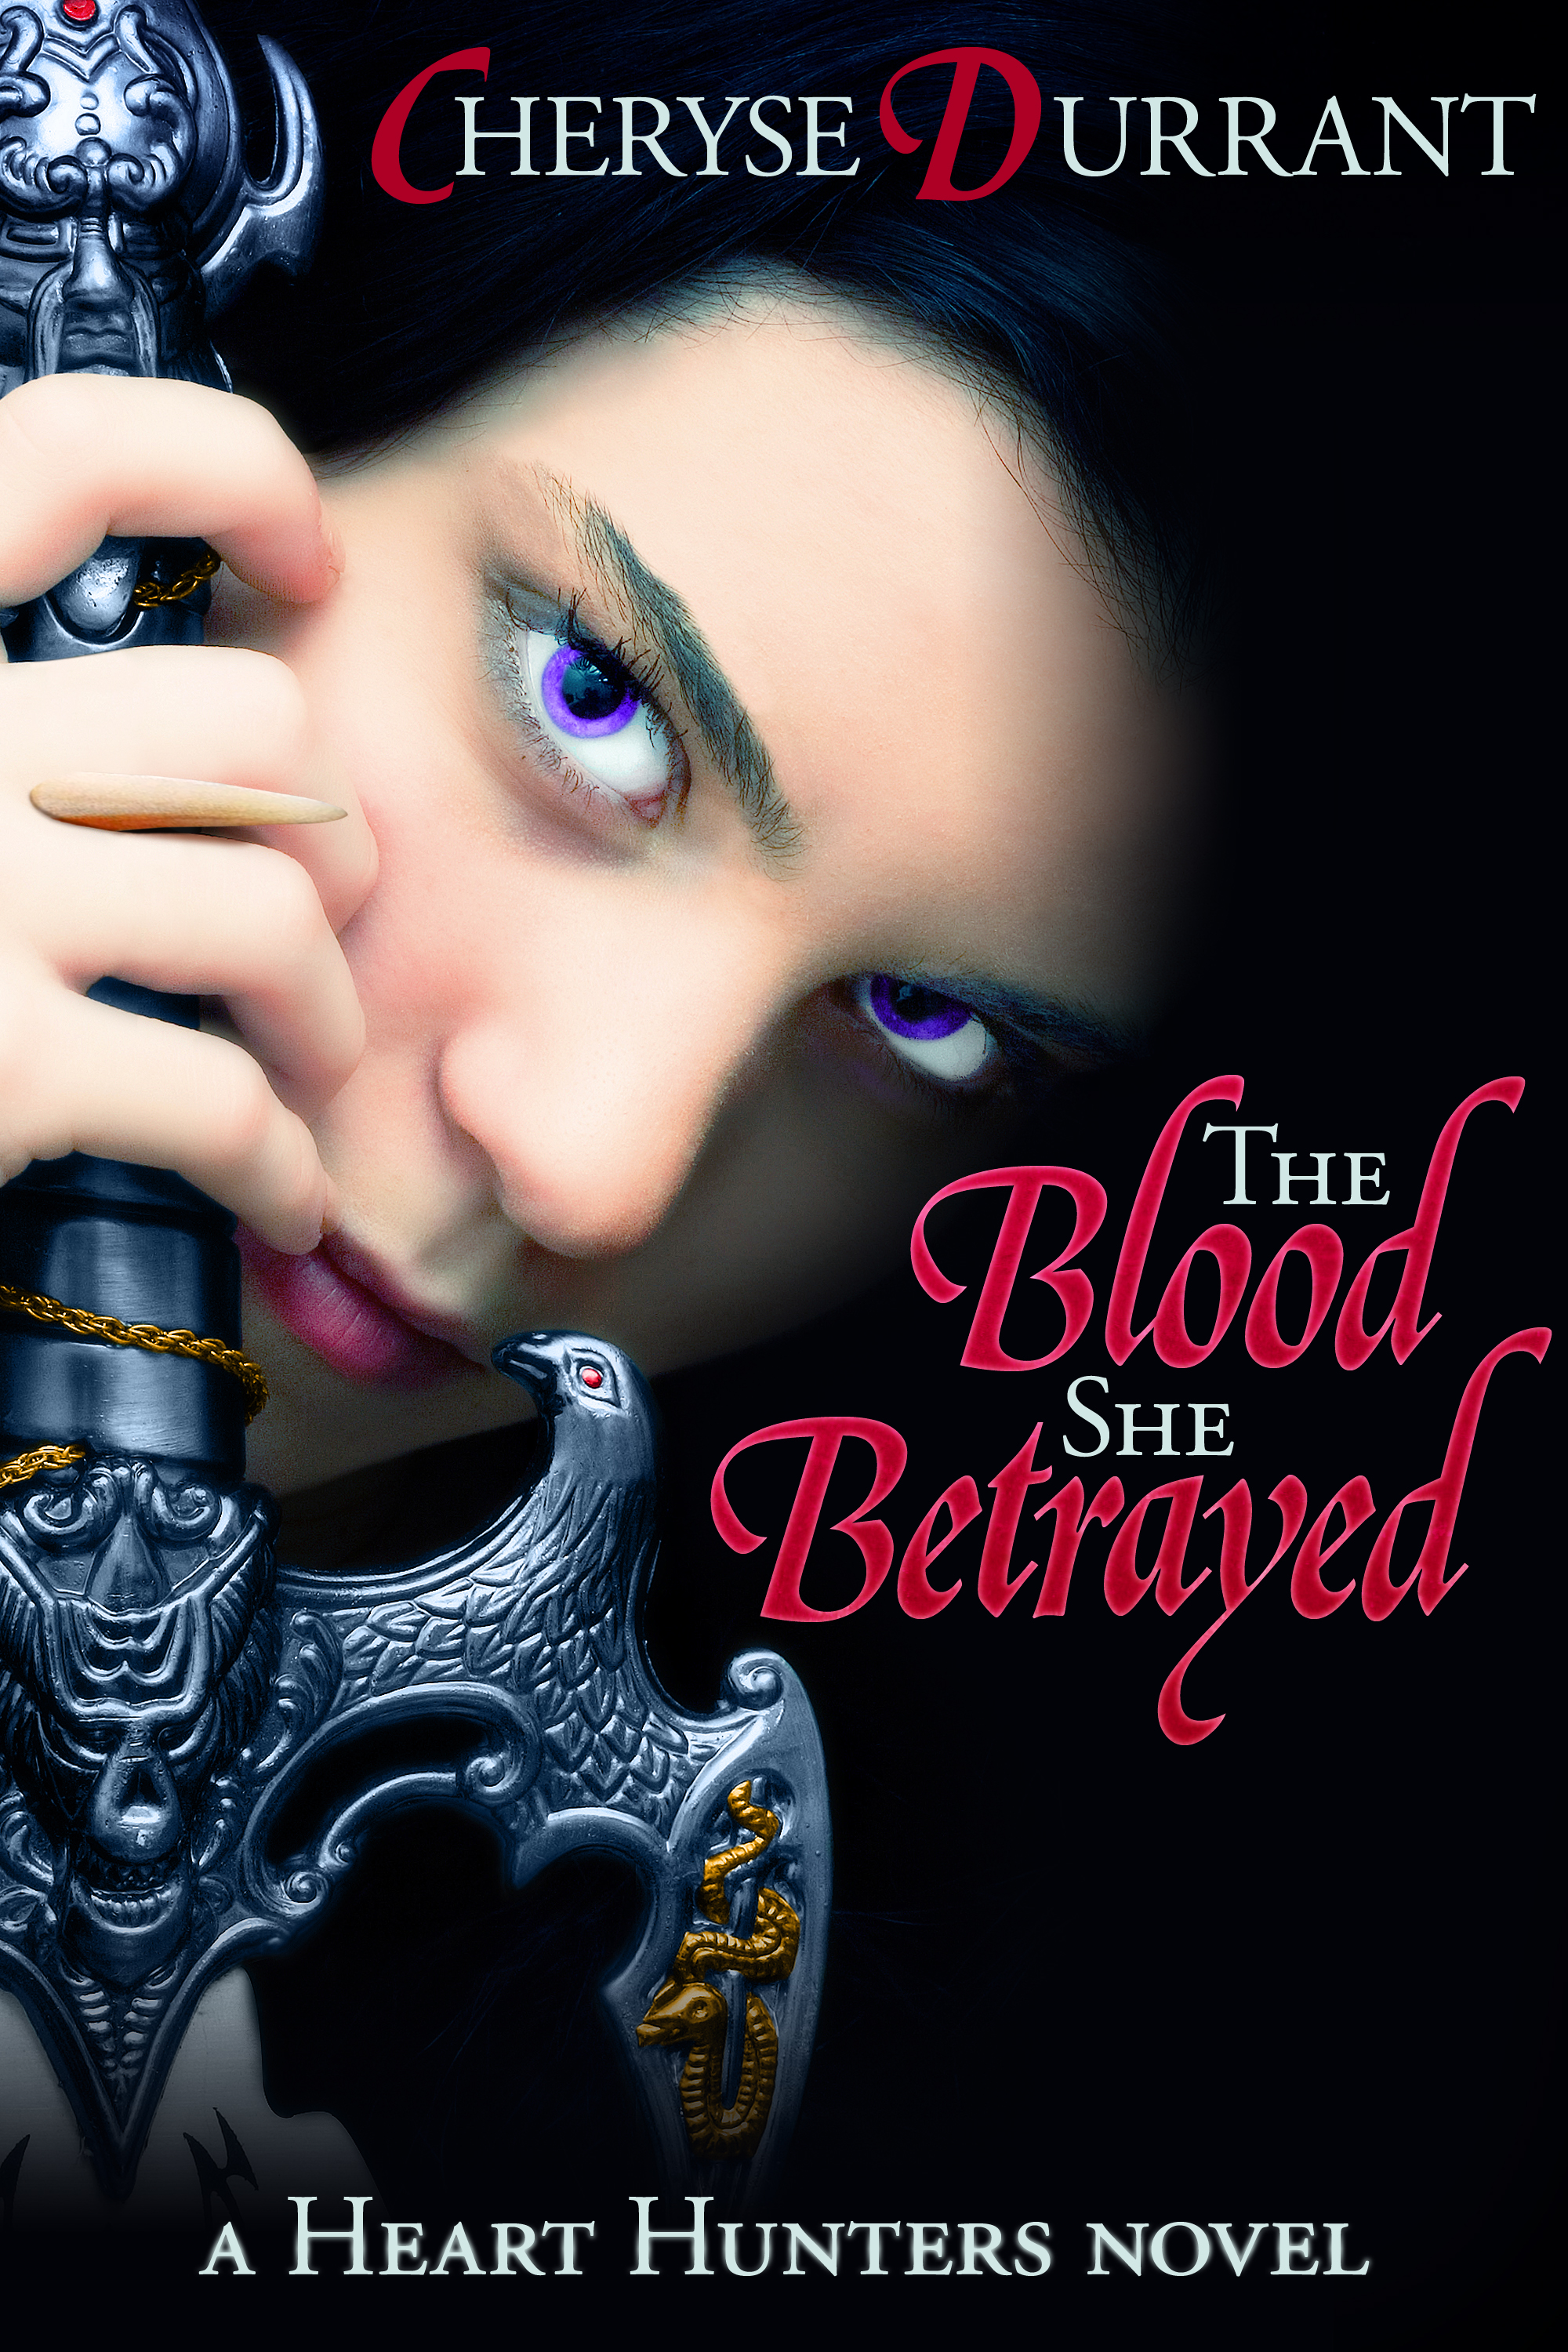 Blood She Betrayed Nw ovr